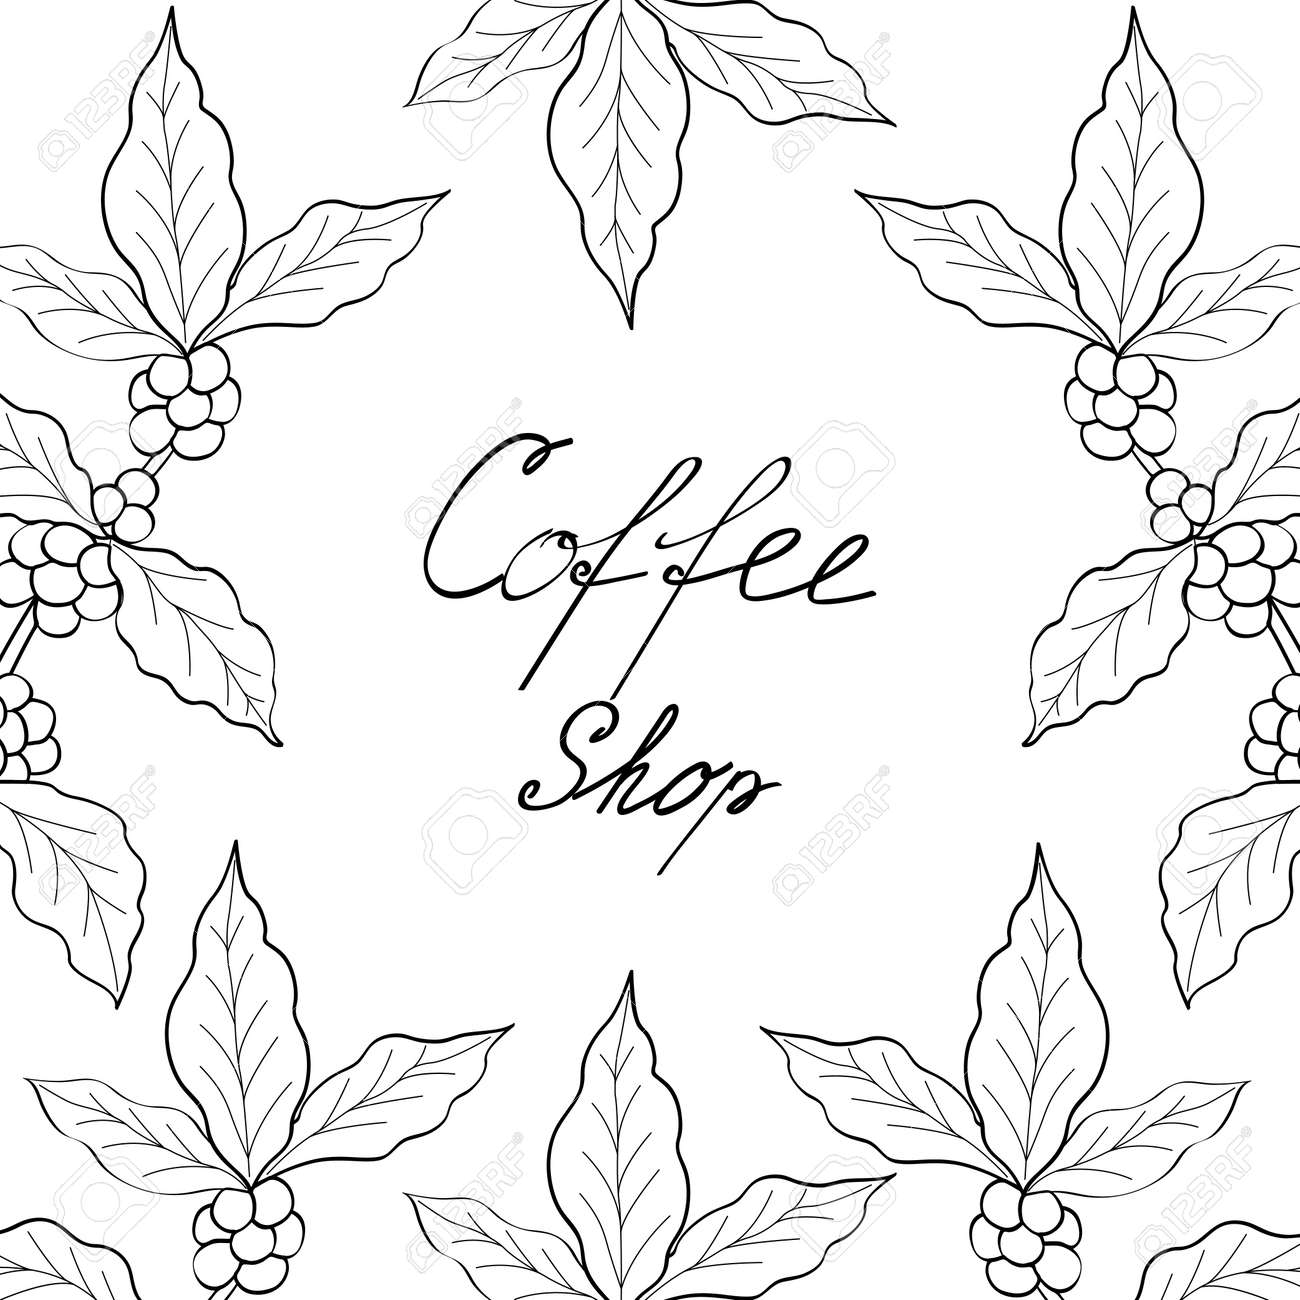 Organic coffee leaf bean hand drawn template banner lettering organic coffee leaf bean hand drawn template banner lettering sketch style altavistaventures Image collections